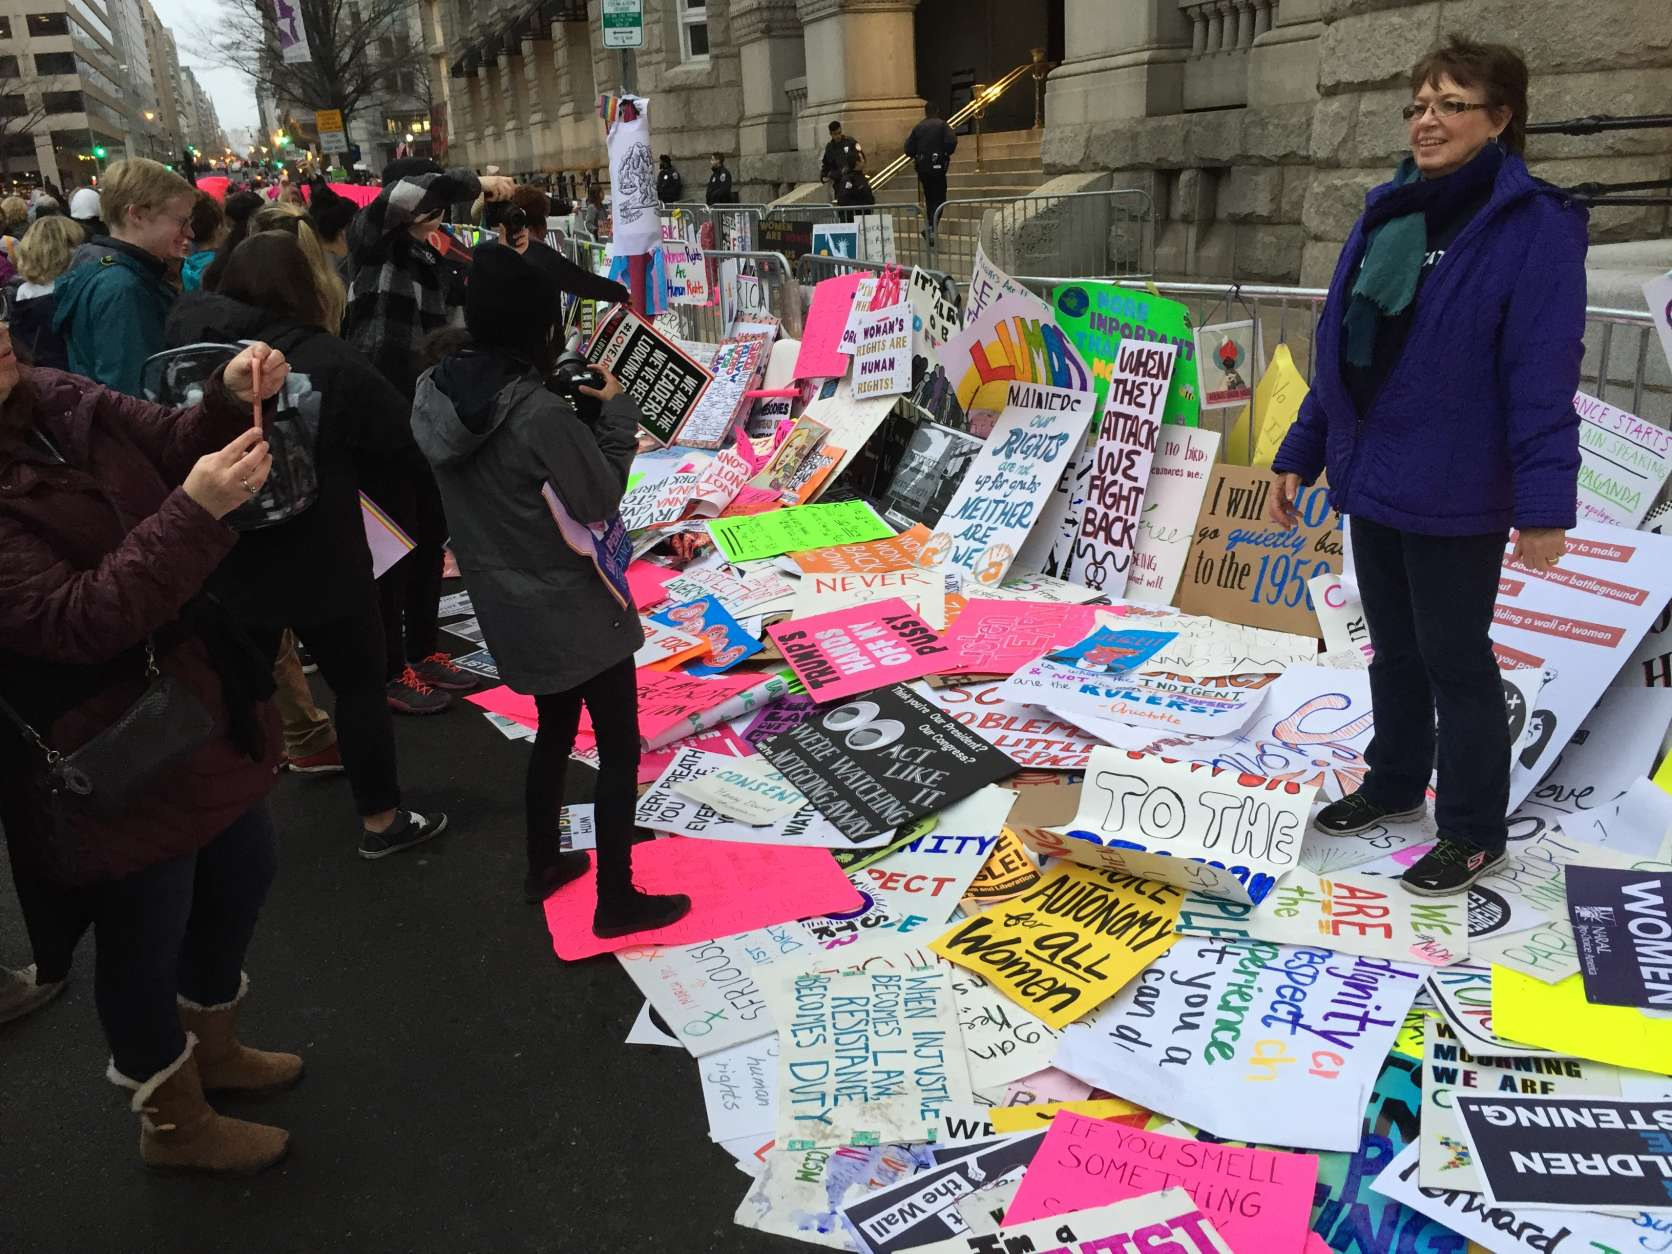 The scene outside Trump Hotel on Saturday, Jan. 21, 2017 during the Women's March on Washington. (WTOP/Judy Taub)